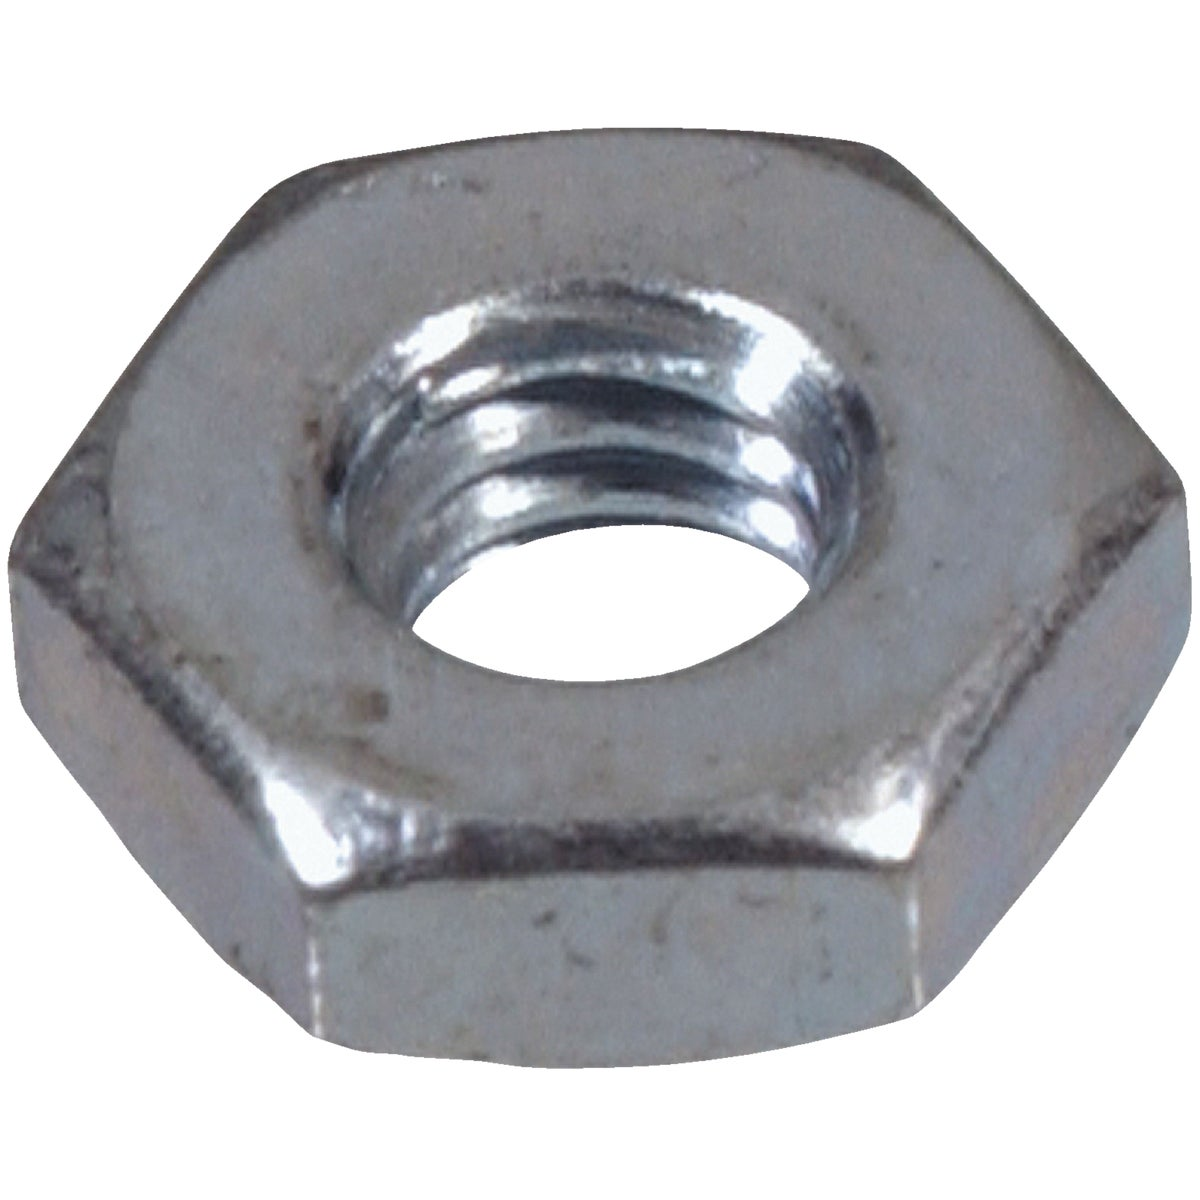 10-32 HEX MACH SCREW NUT